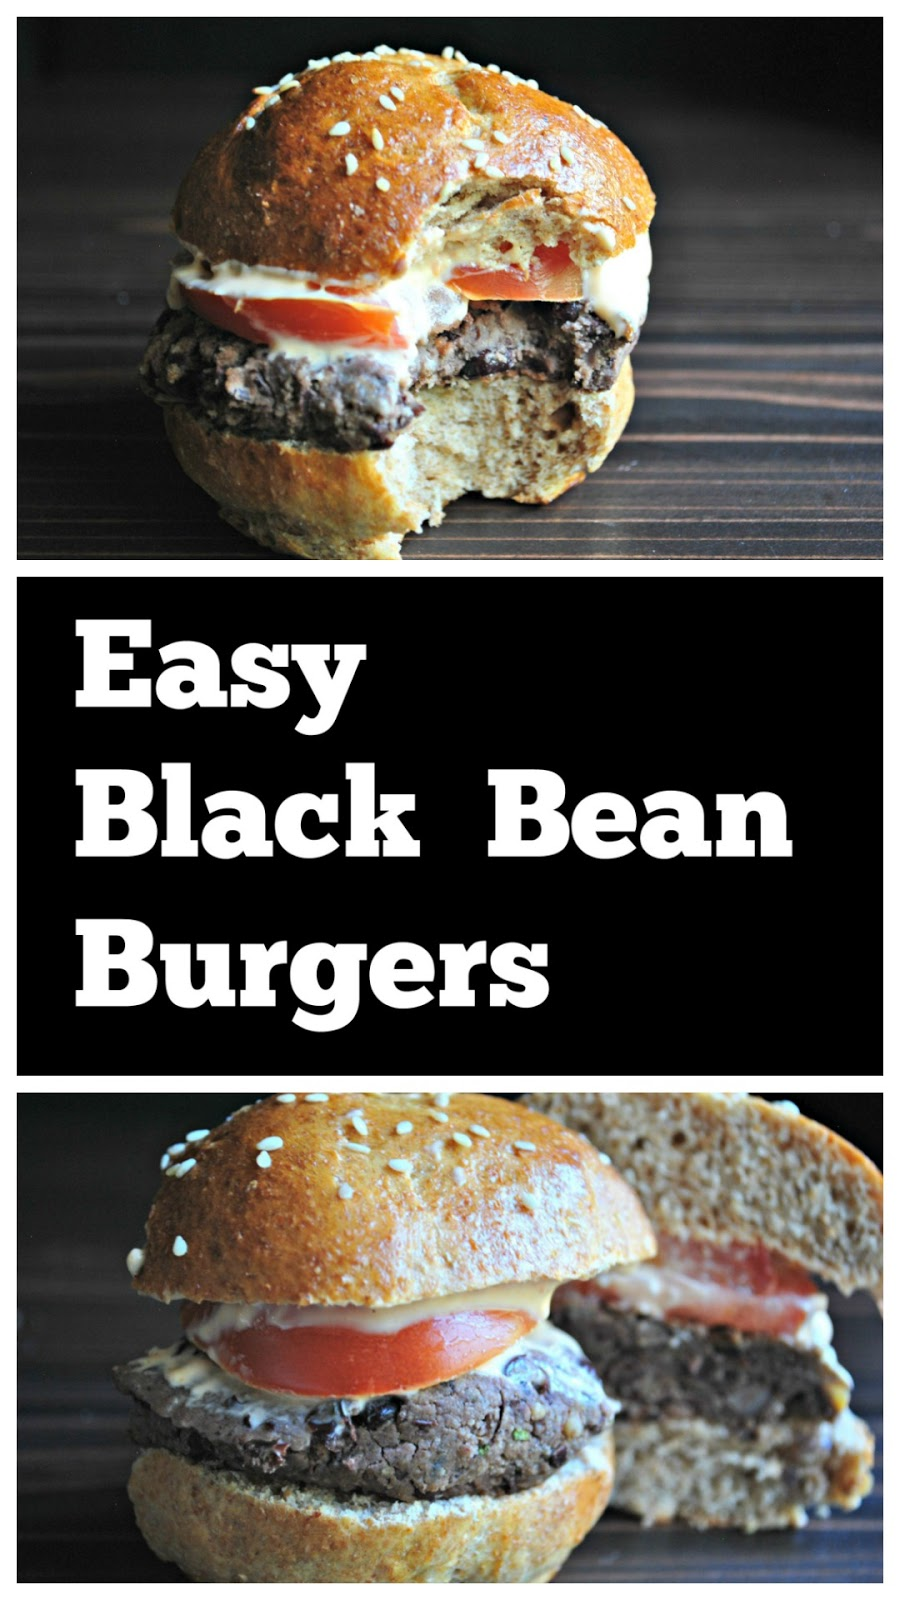 One of the best and easy to make black bean burger recipes : healthy, protein packed, homemade